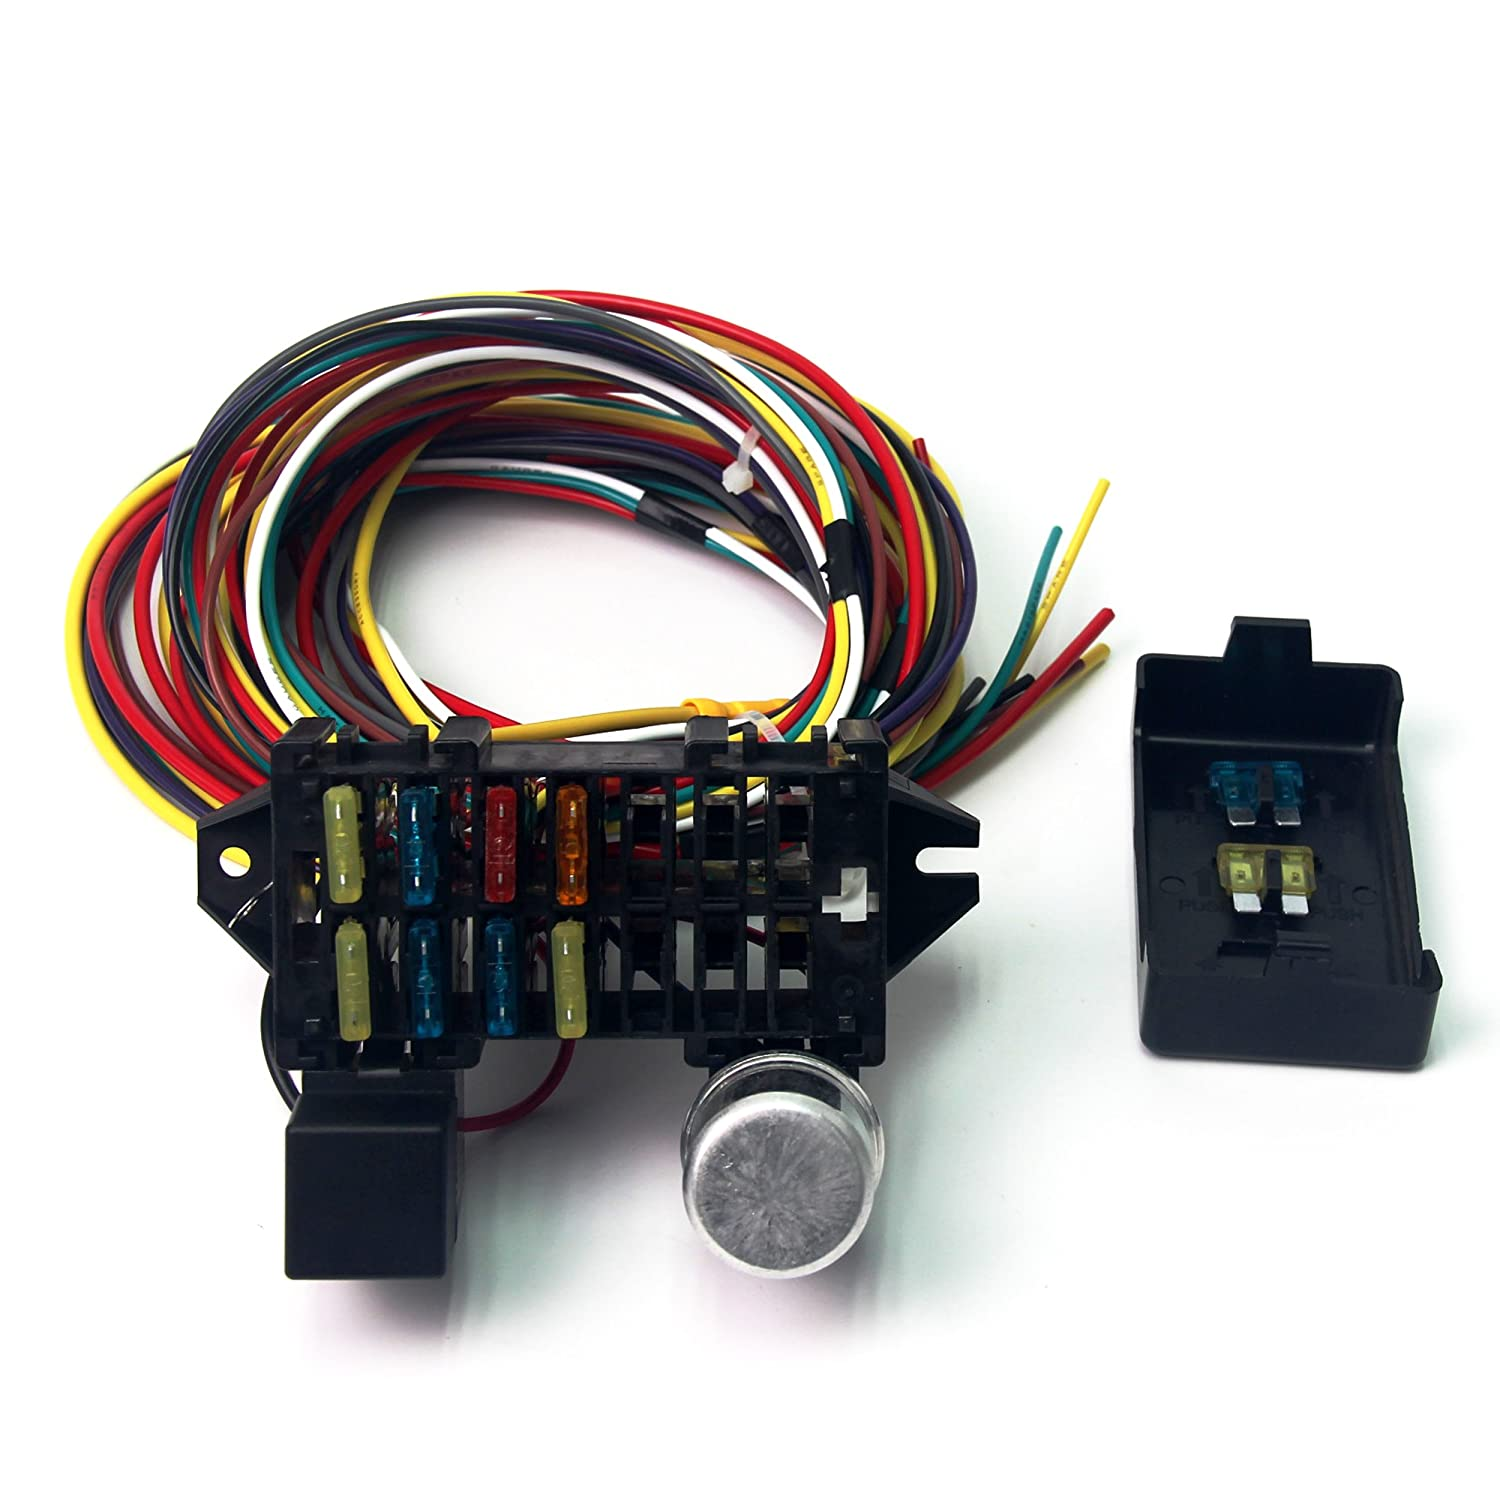 818OhNpuI4L._SL1500_ amazon com wisamic 10 circuit basic wiring harness fuse box hot rod wiring harness at virtualis.co